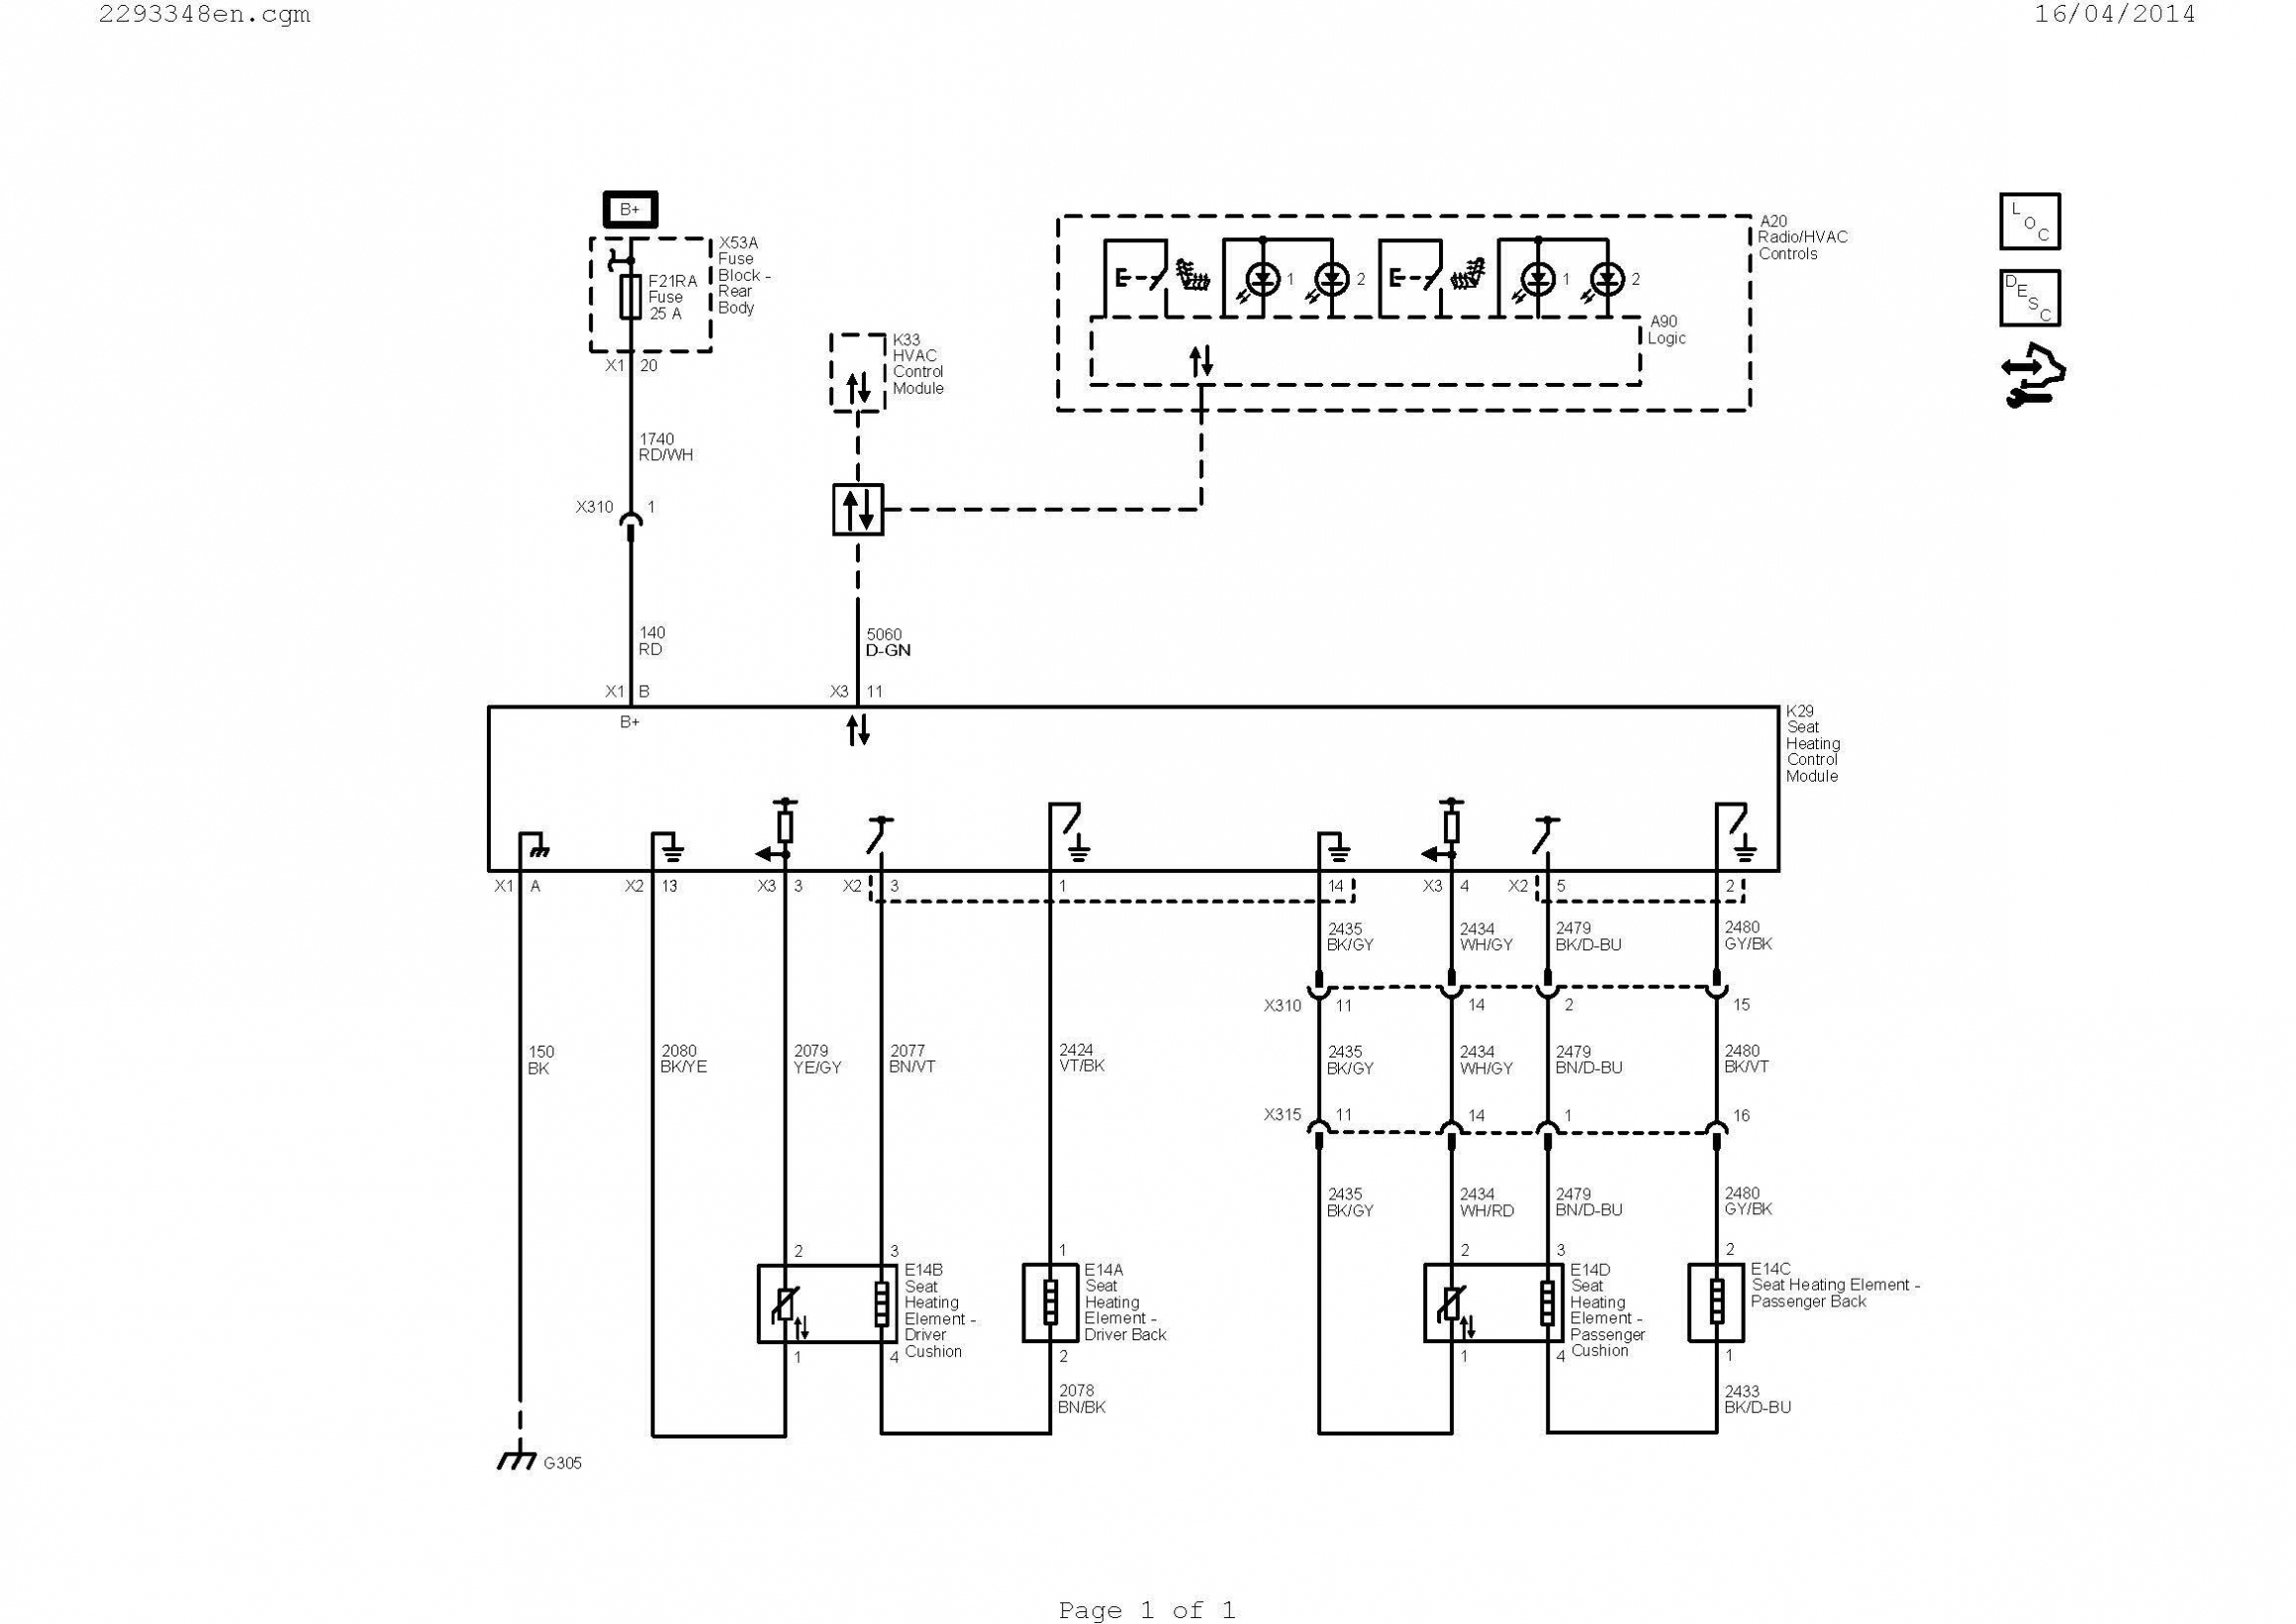 Rv Thermostat Wiring Diagram Download – Duo Therm Thermostat Wiring - Rv Thermostat Wiring Diagram